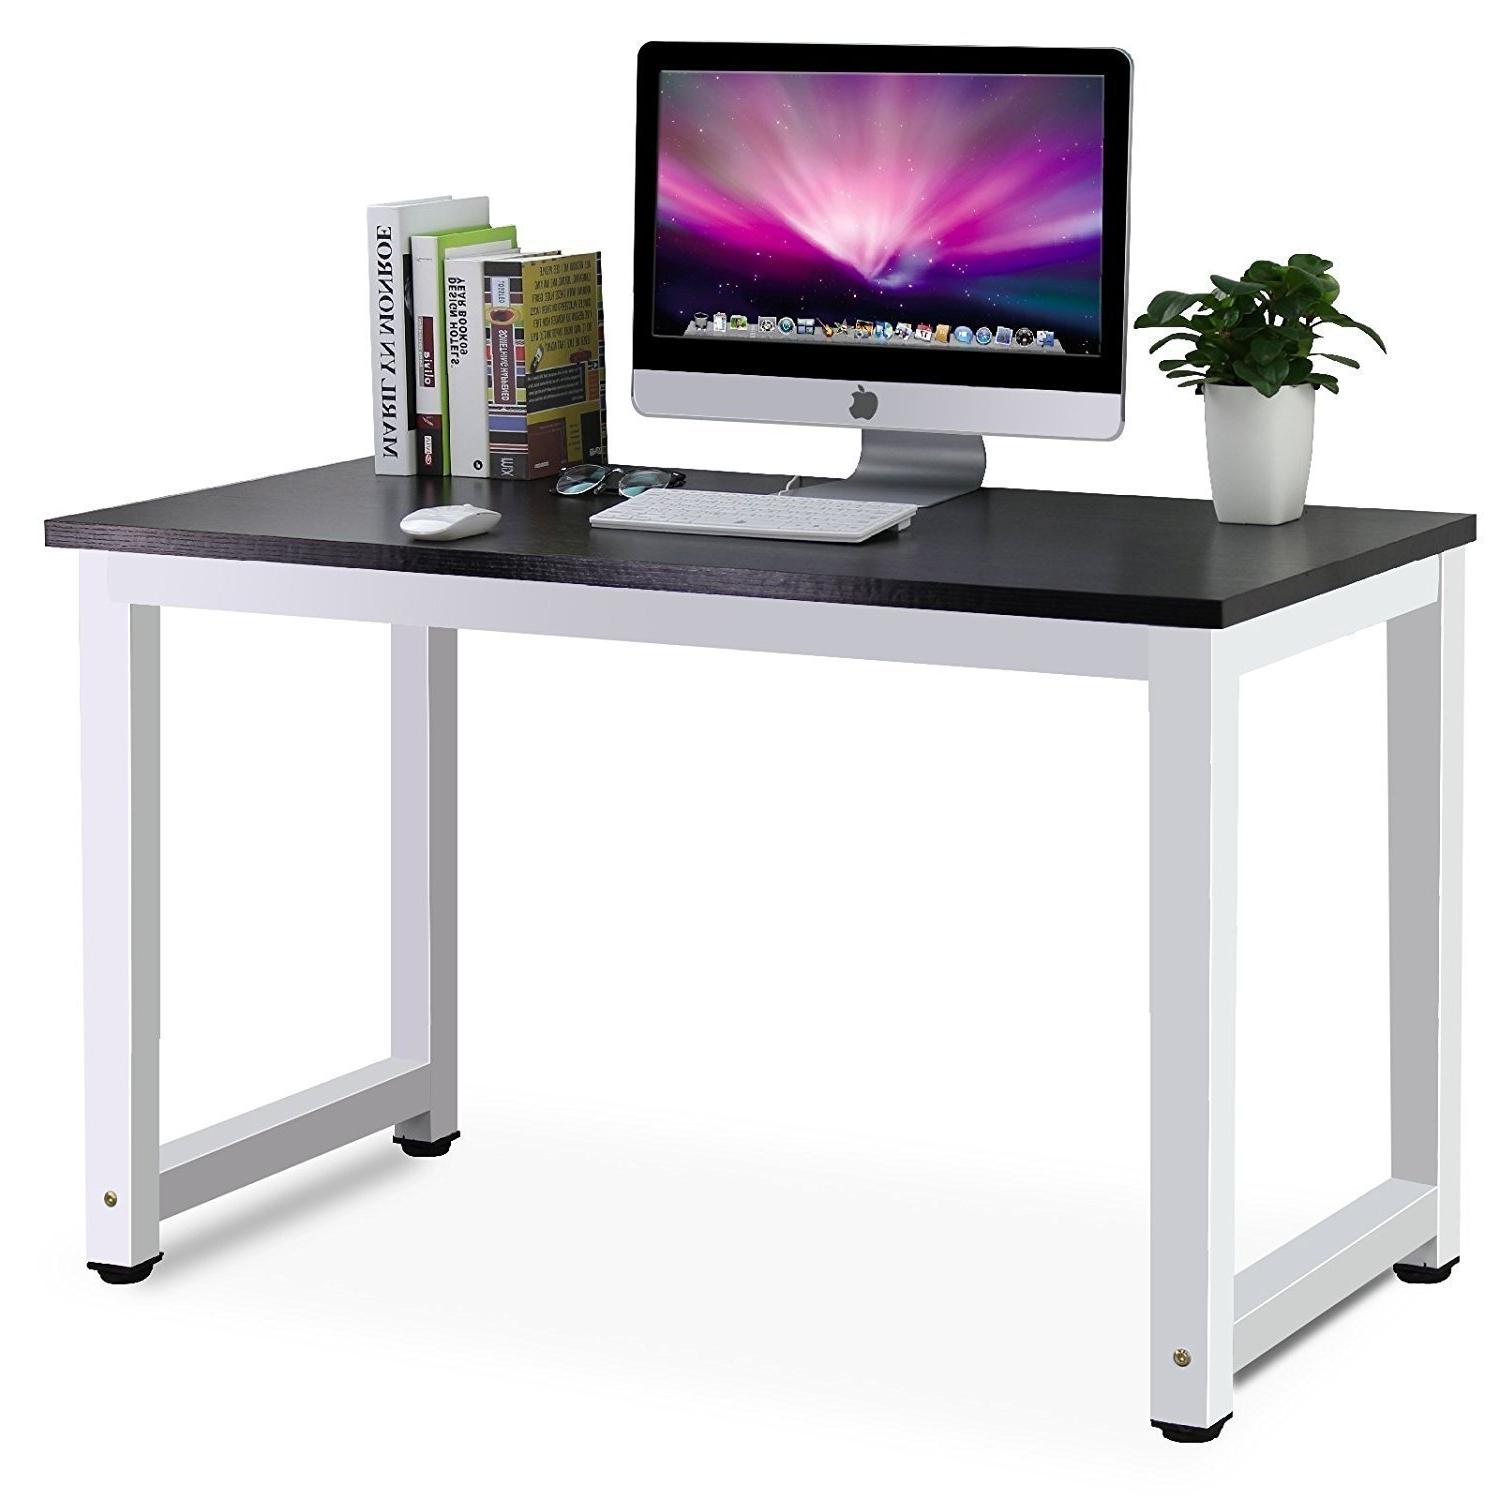 Tribesigns Modern Simple Style Computer Desk Pc Laptop Study Table Intended For Well Known Computer Desks (View 13 of 20)